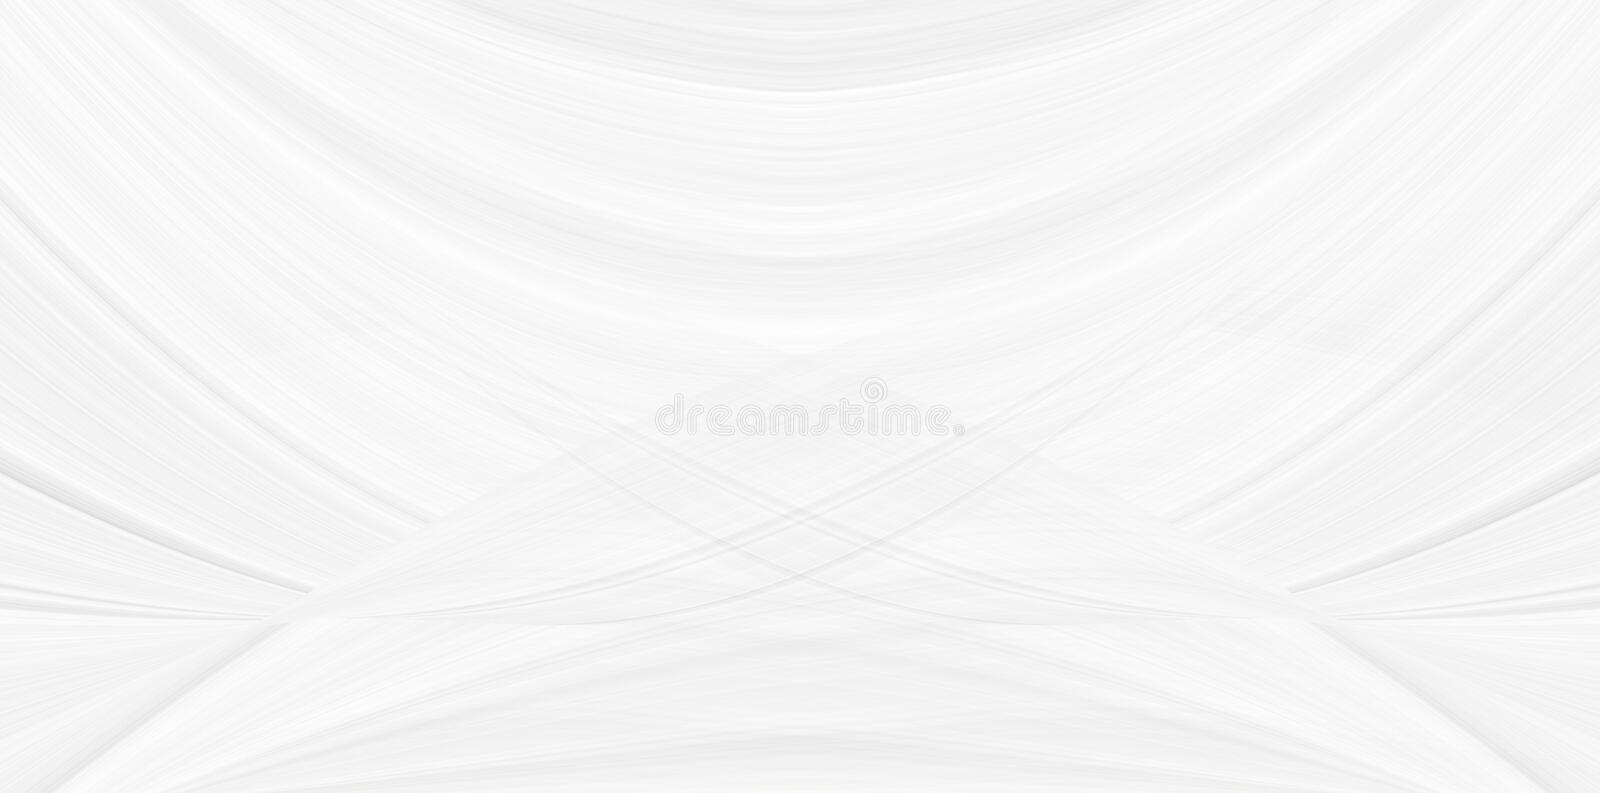 White trendy background with a smooth bend of lines and cosmic waves, illustration for a modern beautiful design. Texture of festive gray sparkles, a pattern stock images